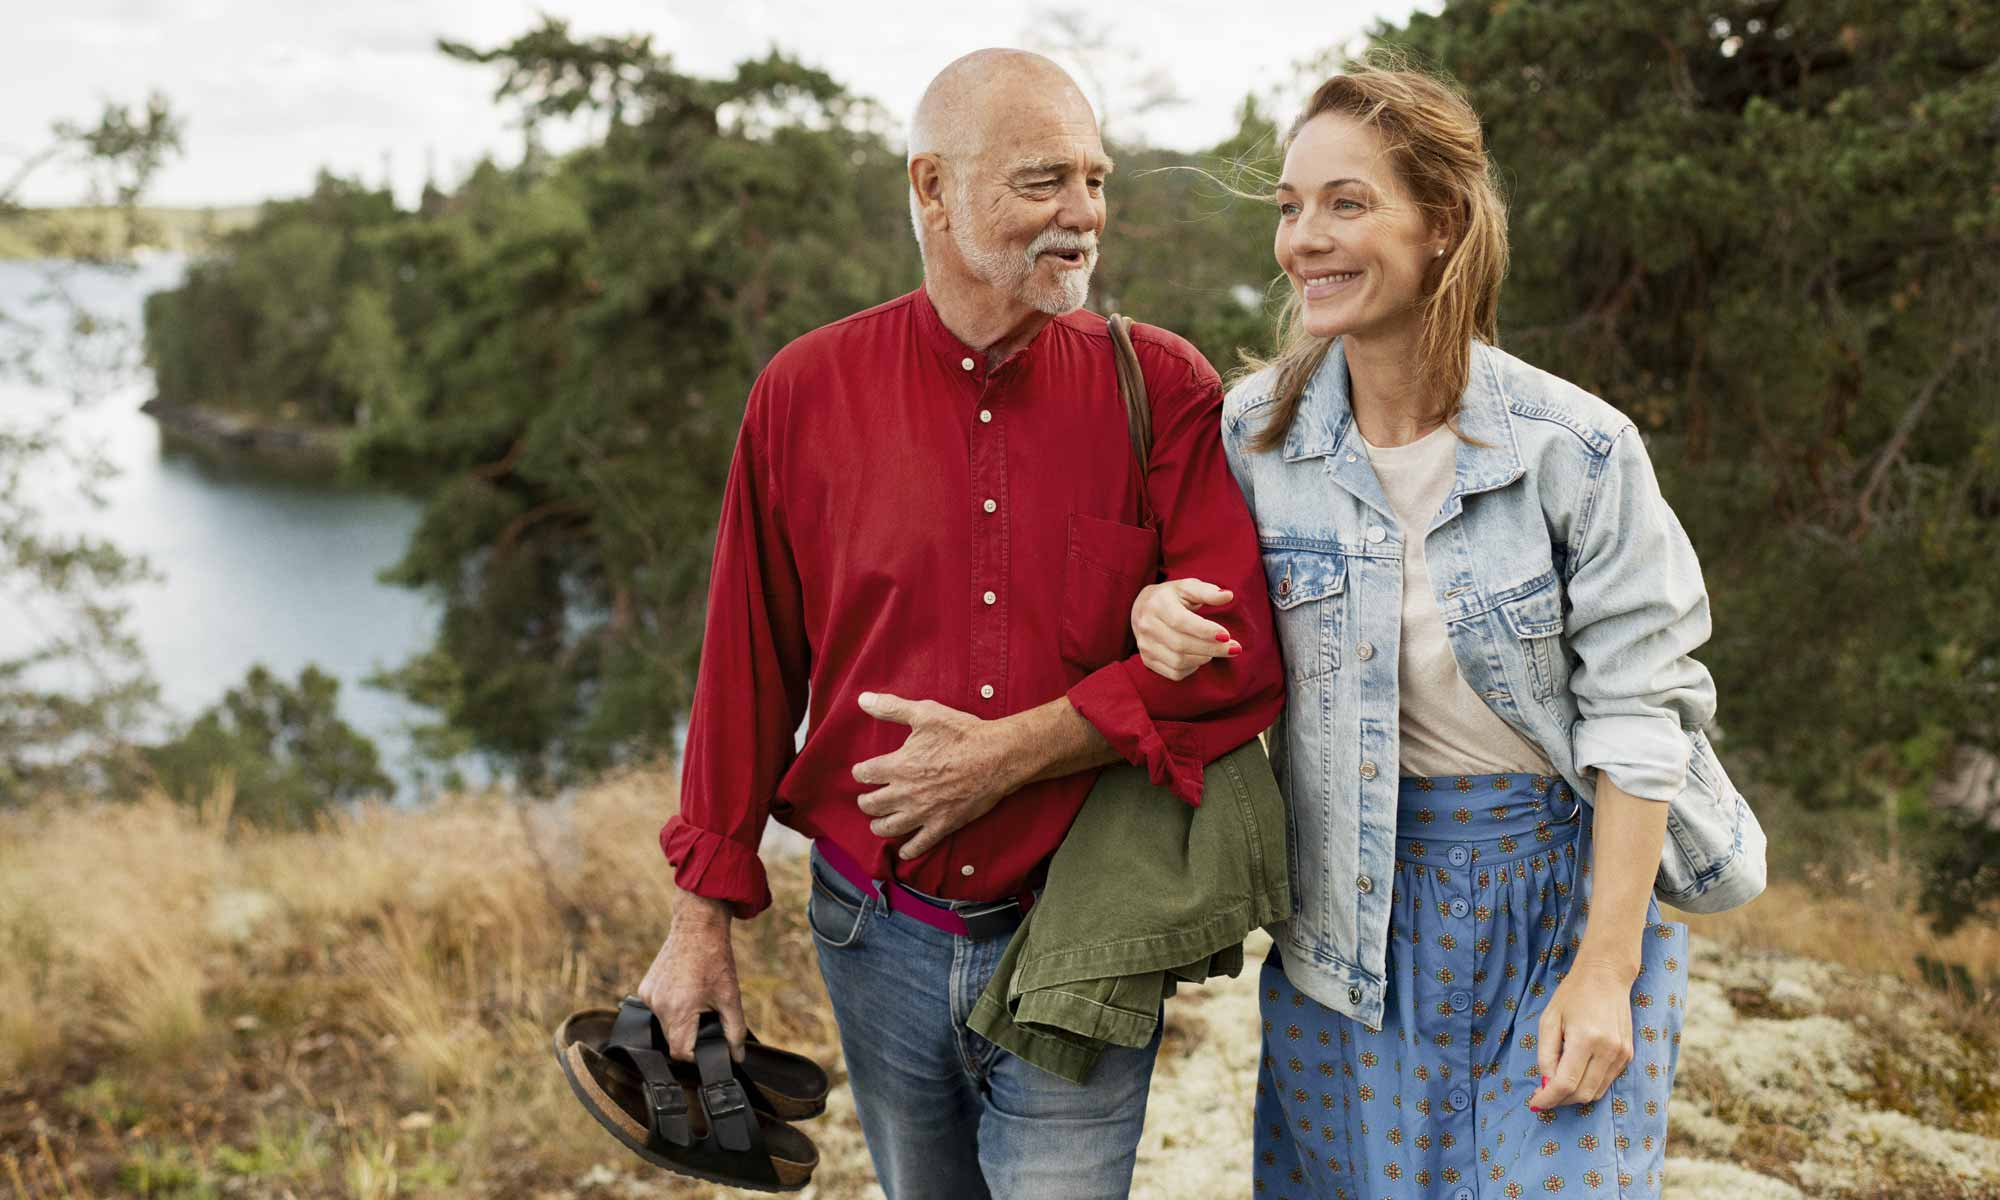 Man and woman arm in arm walking up from a lake